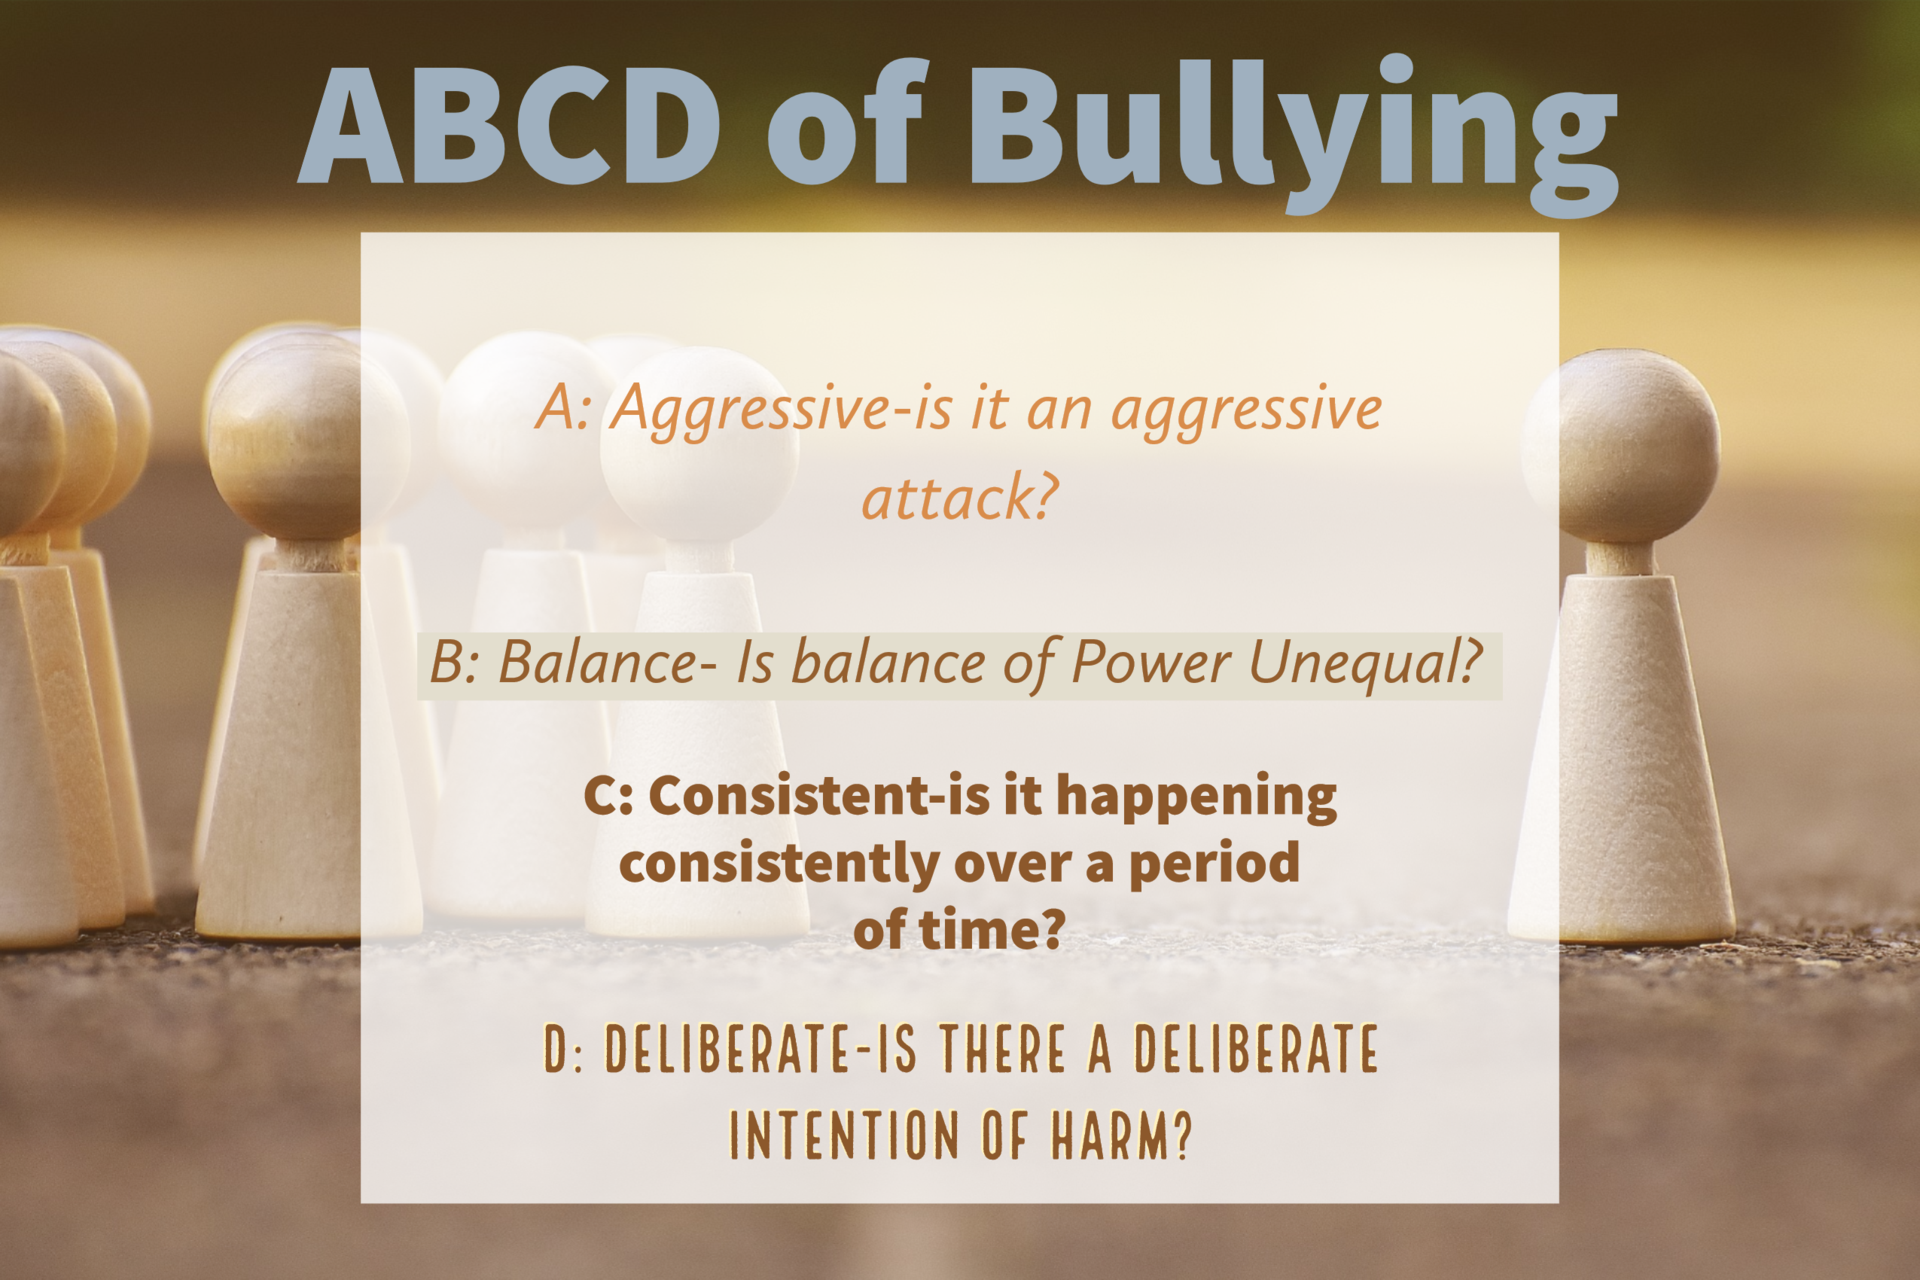 A B C Ds of bullying